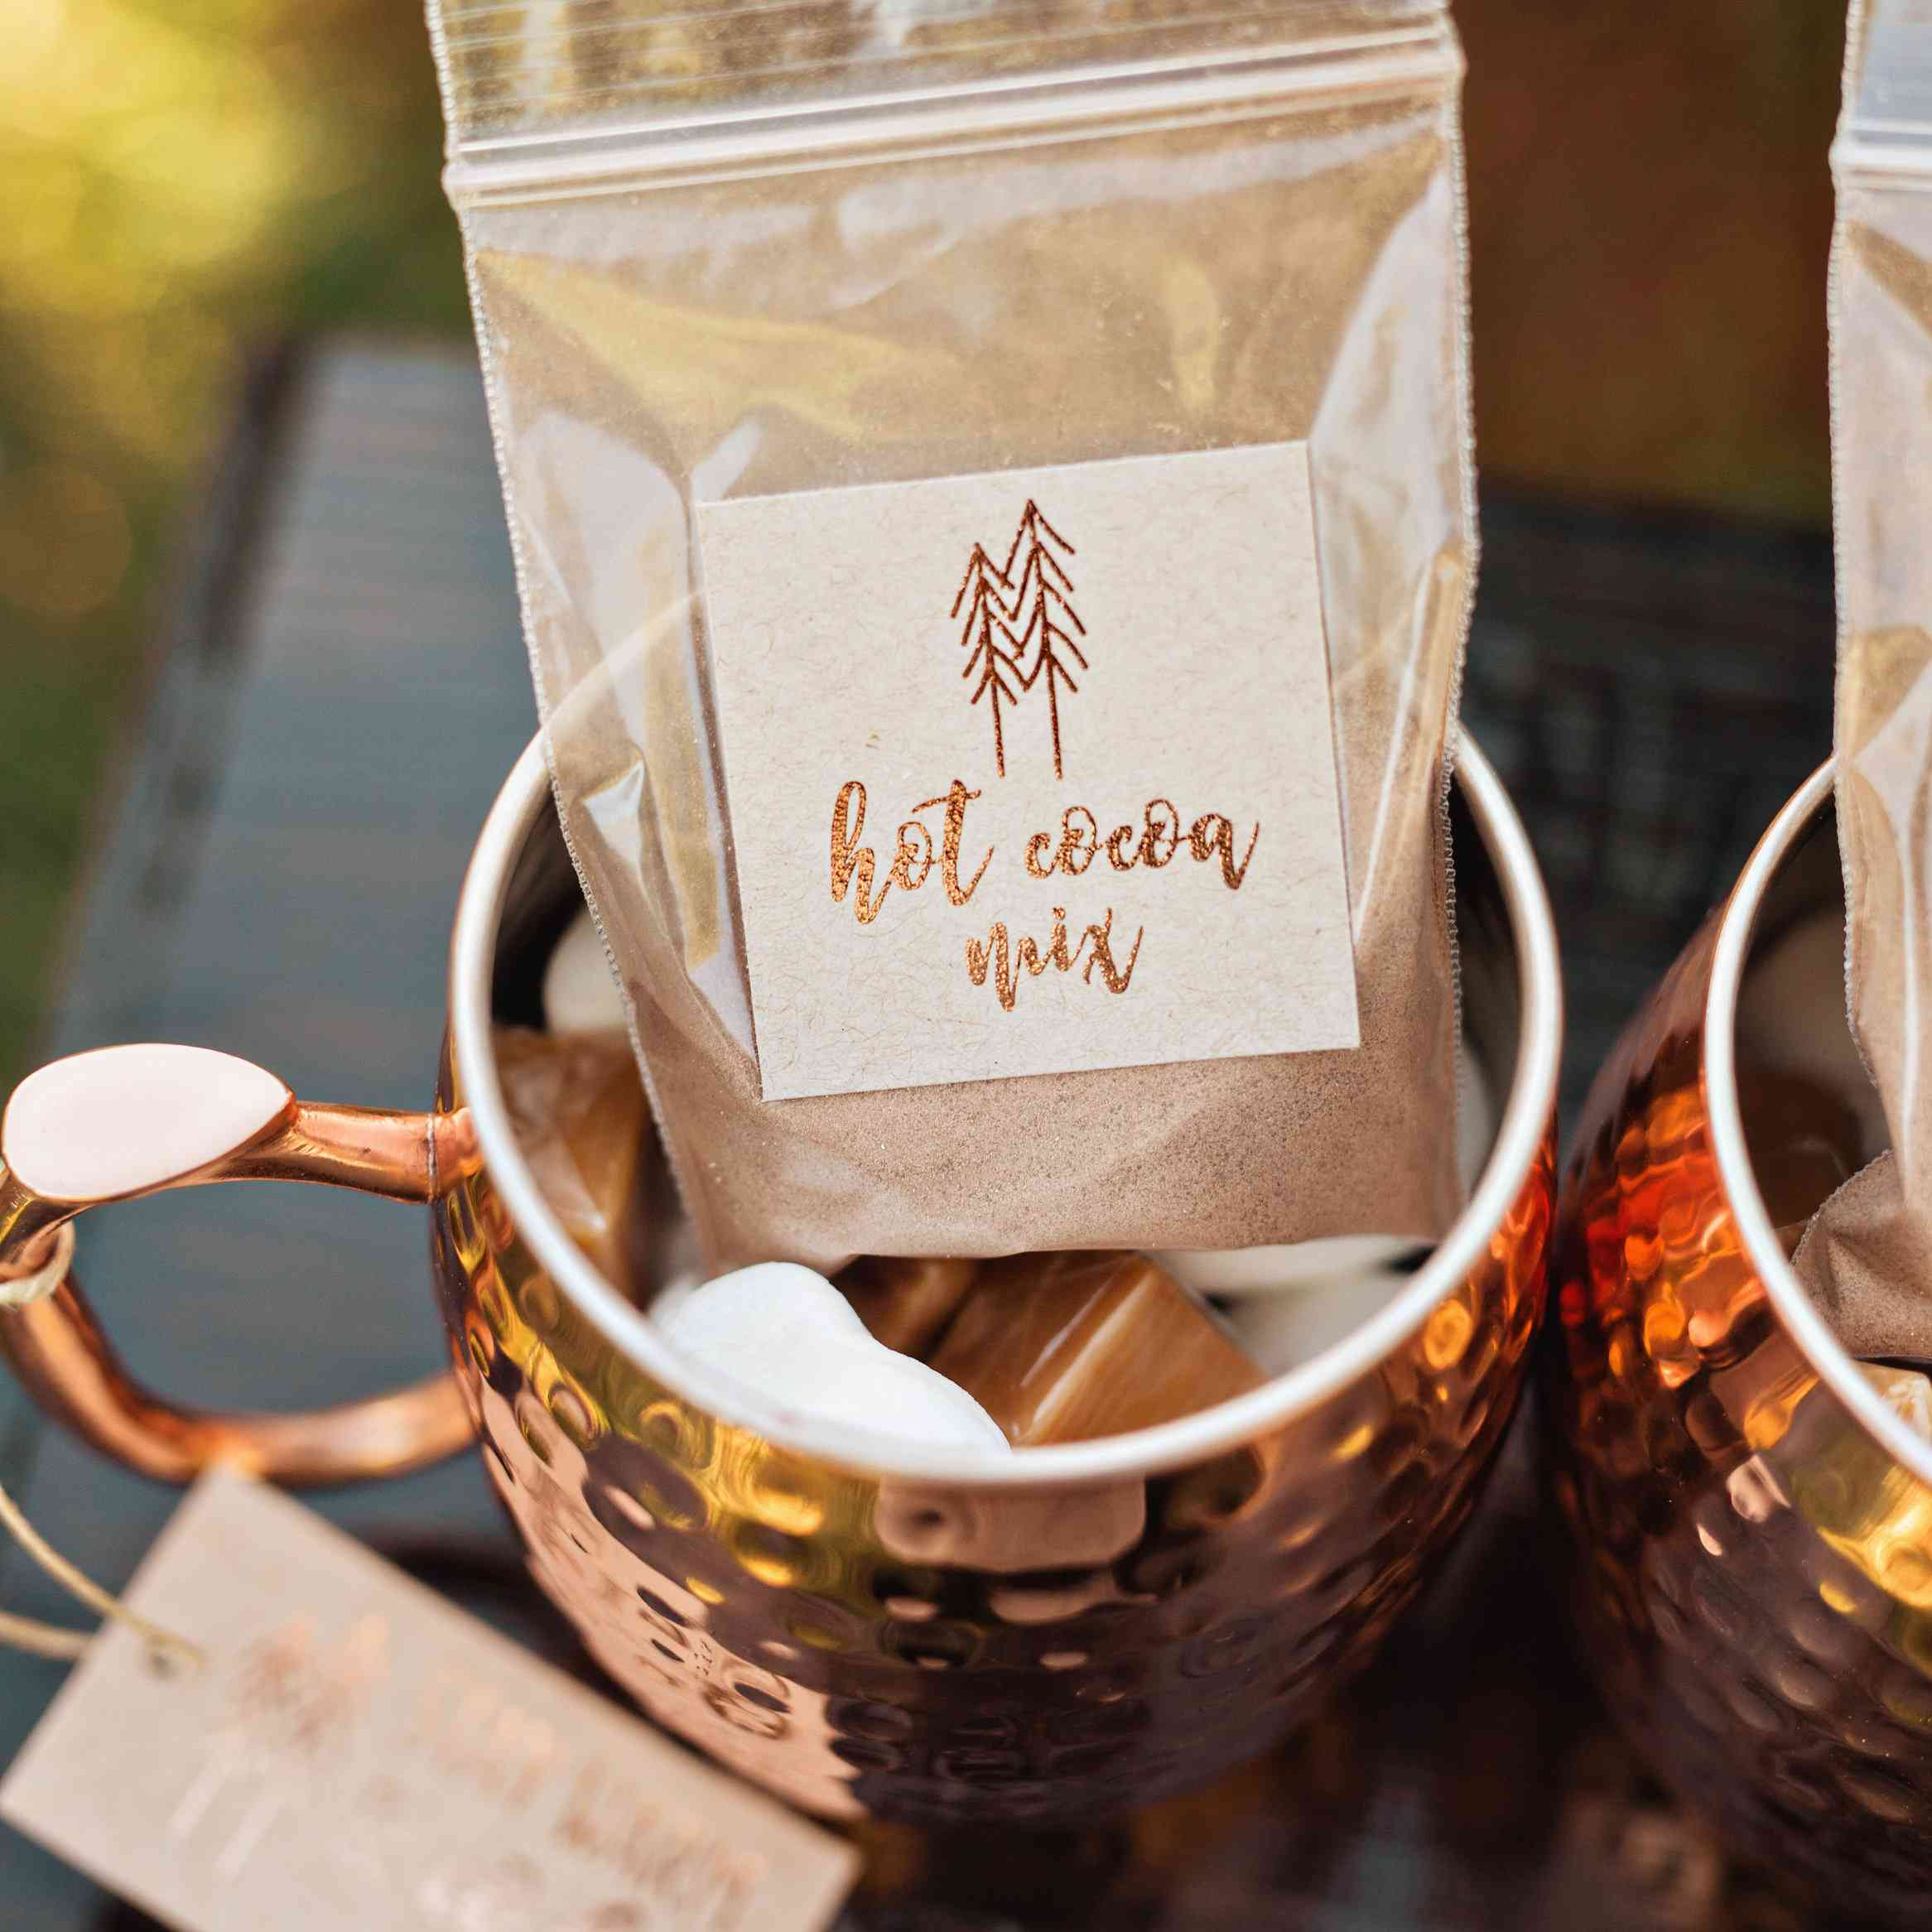 Diy Wedding Favors: 15 DIY Wedding Favors That Even The Least Crafty Couples